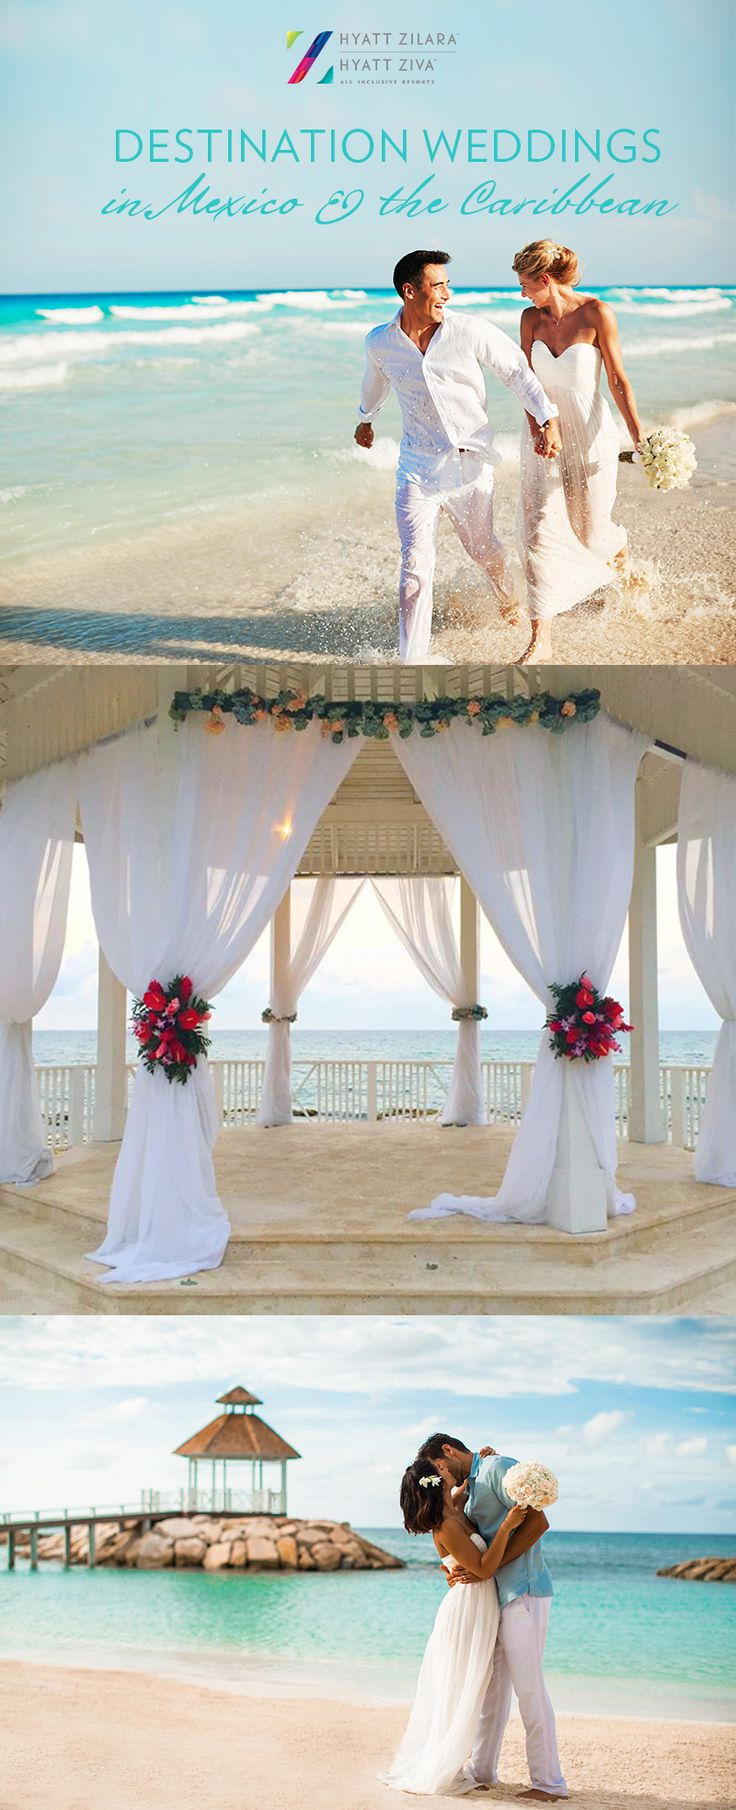 43 best images about destination wedding on pinterest for Destination wedding location ideas